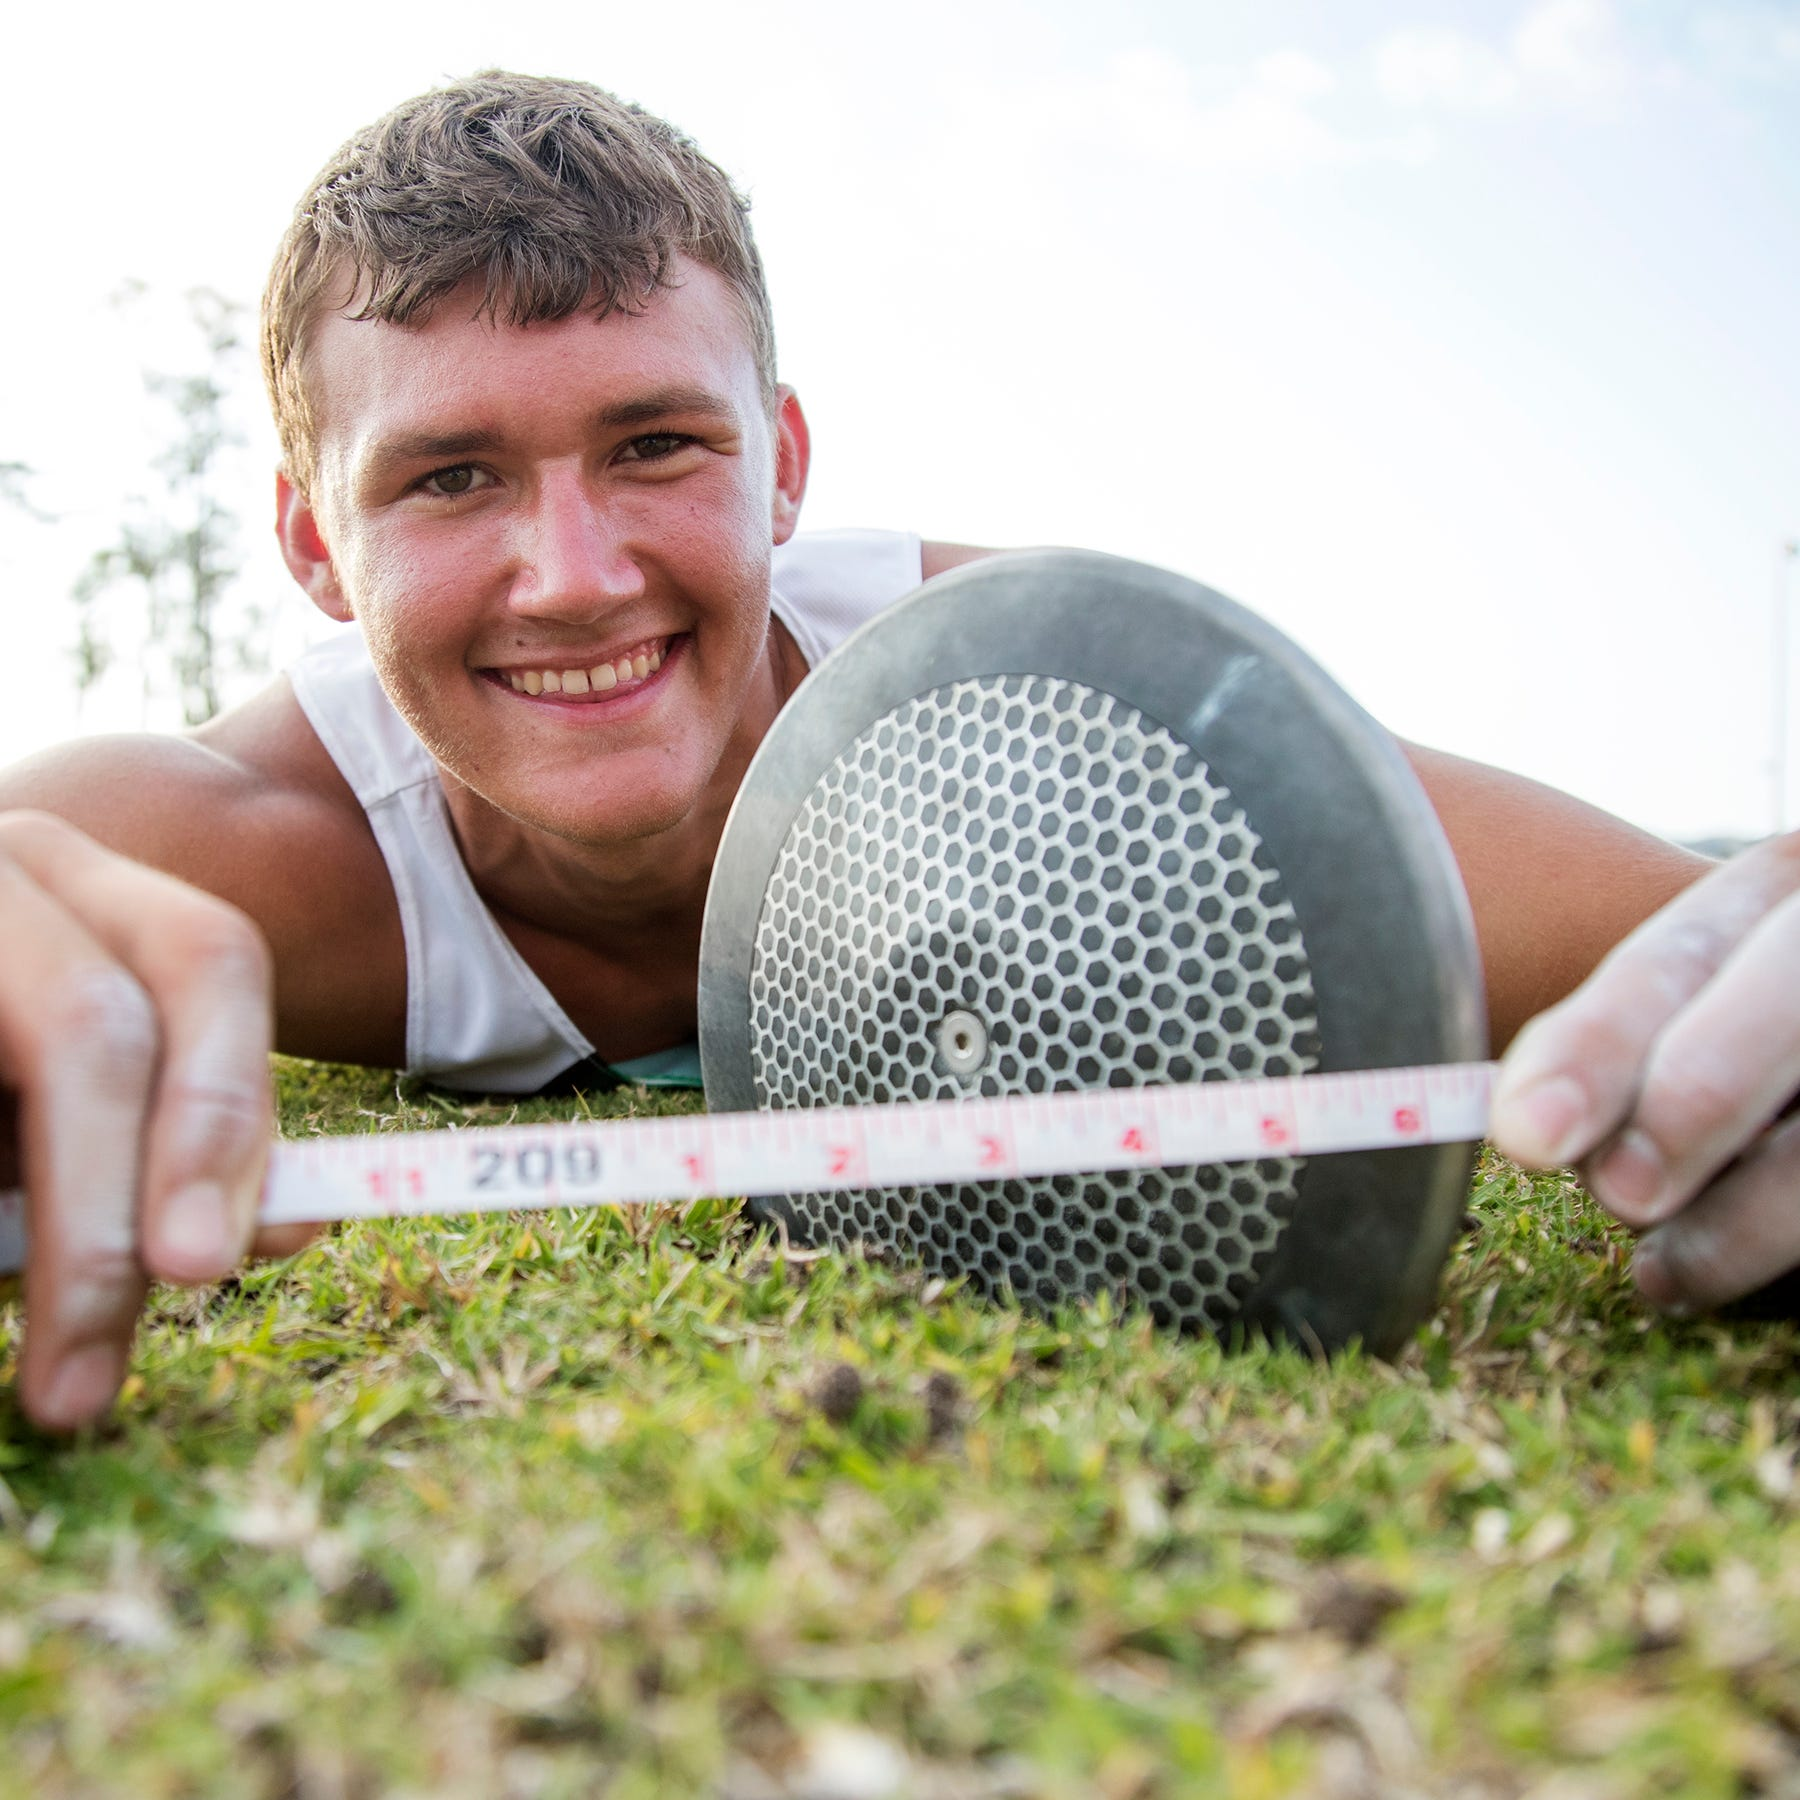 Fort Myers High's Jacob Lemmon shatters Florida high school boys discus record